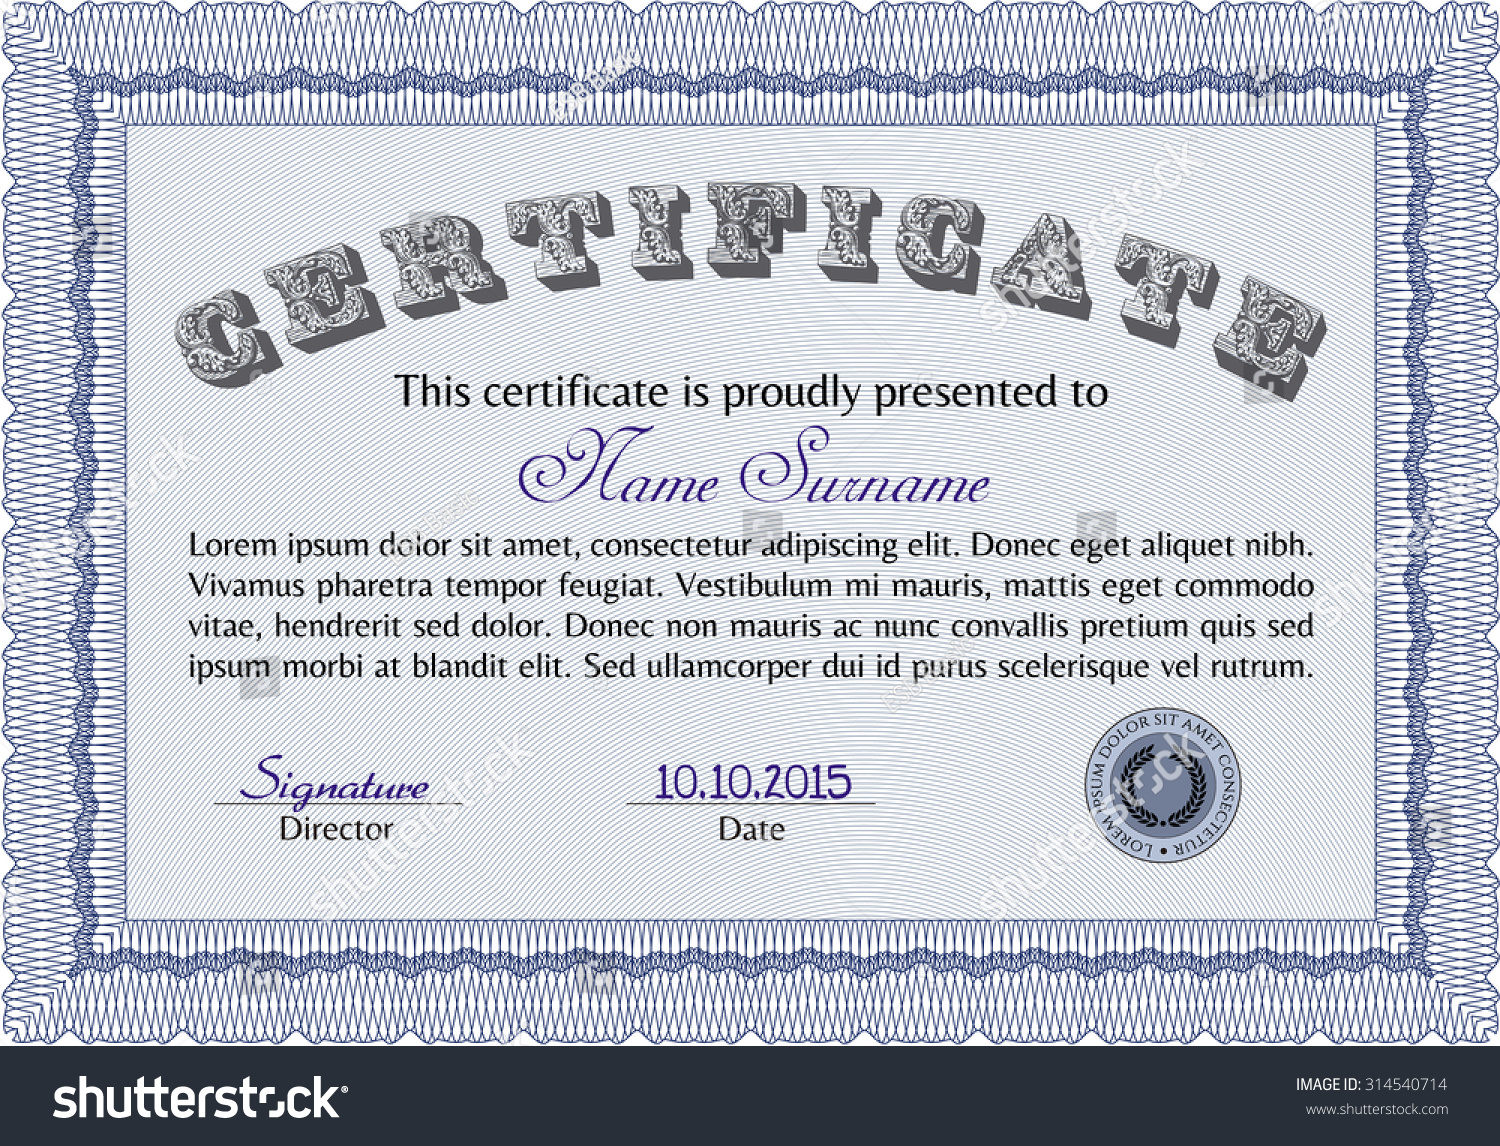 Diploma certificate template easy print diploma stock vector 2018 diploma or certificate template easy to print diploma of completionperior design yadclub Images